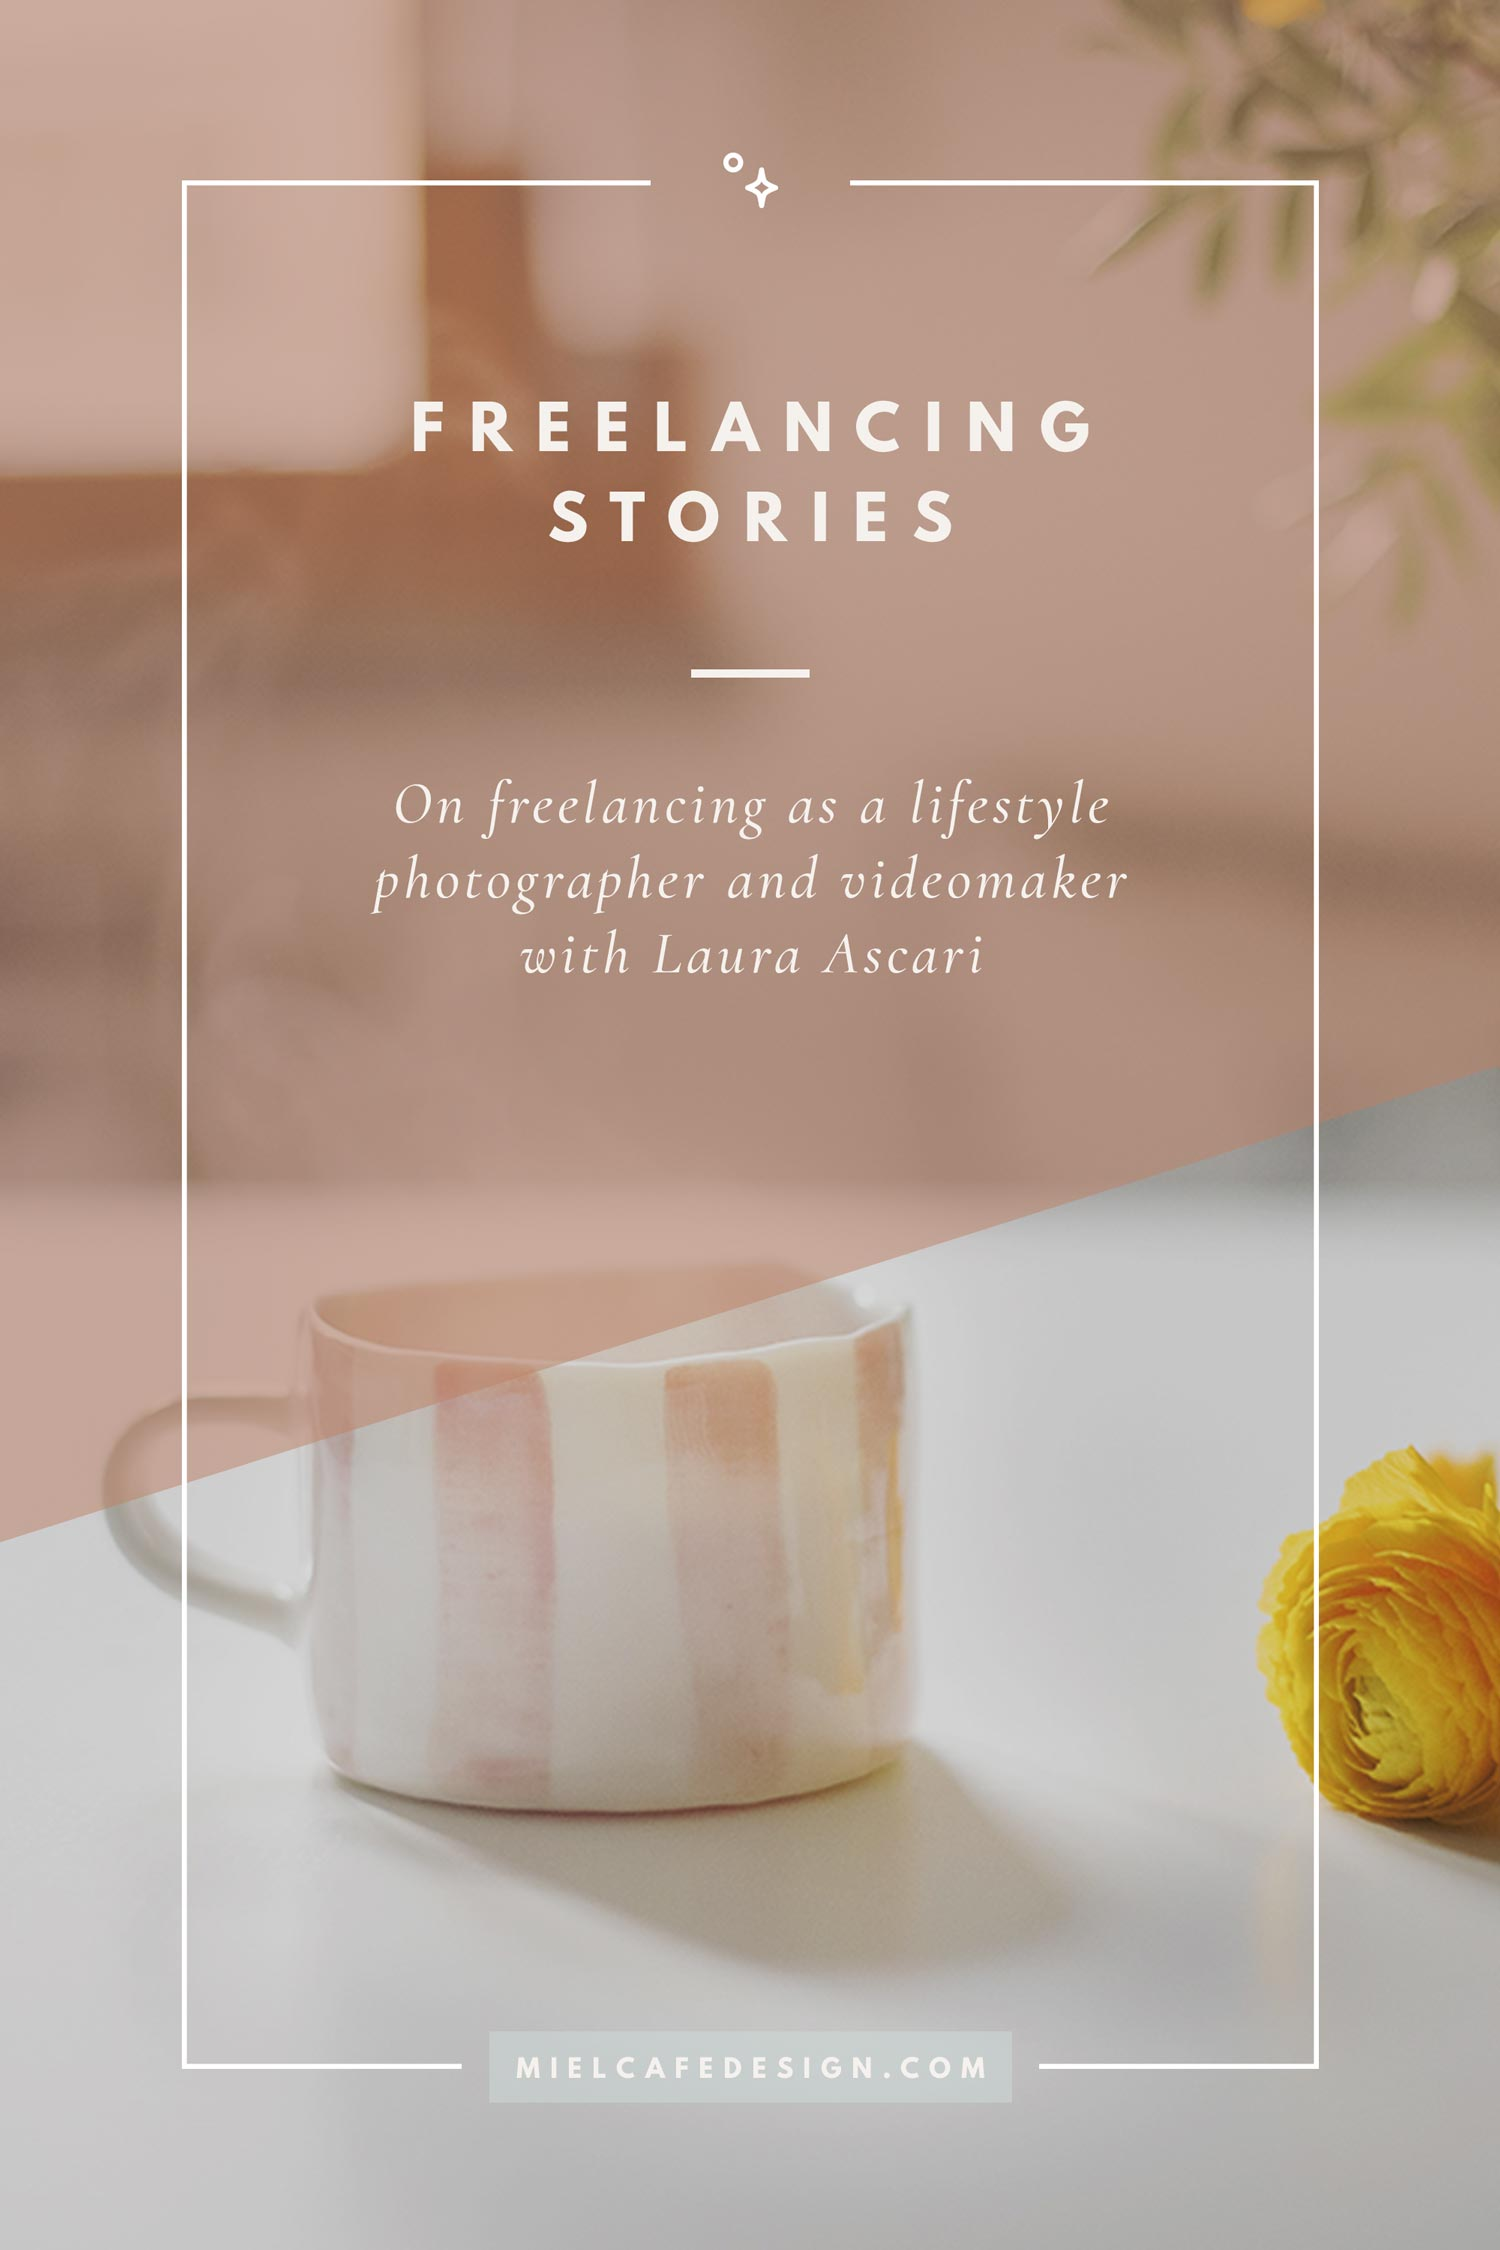 Freelancing Stories: Freelancing As A Lifestyle Photographer And Videomaker with Laura Ascari